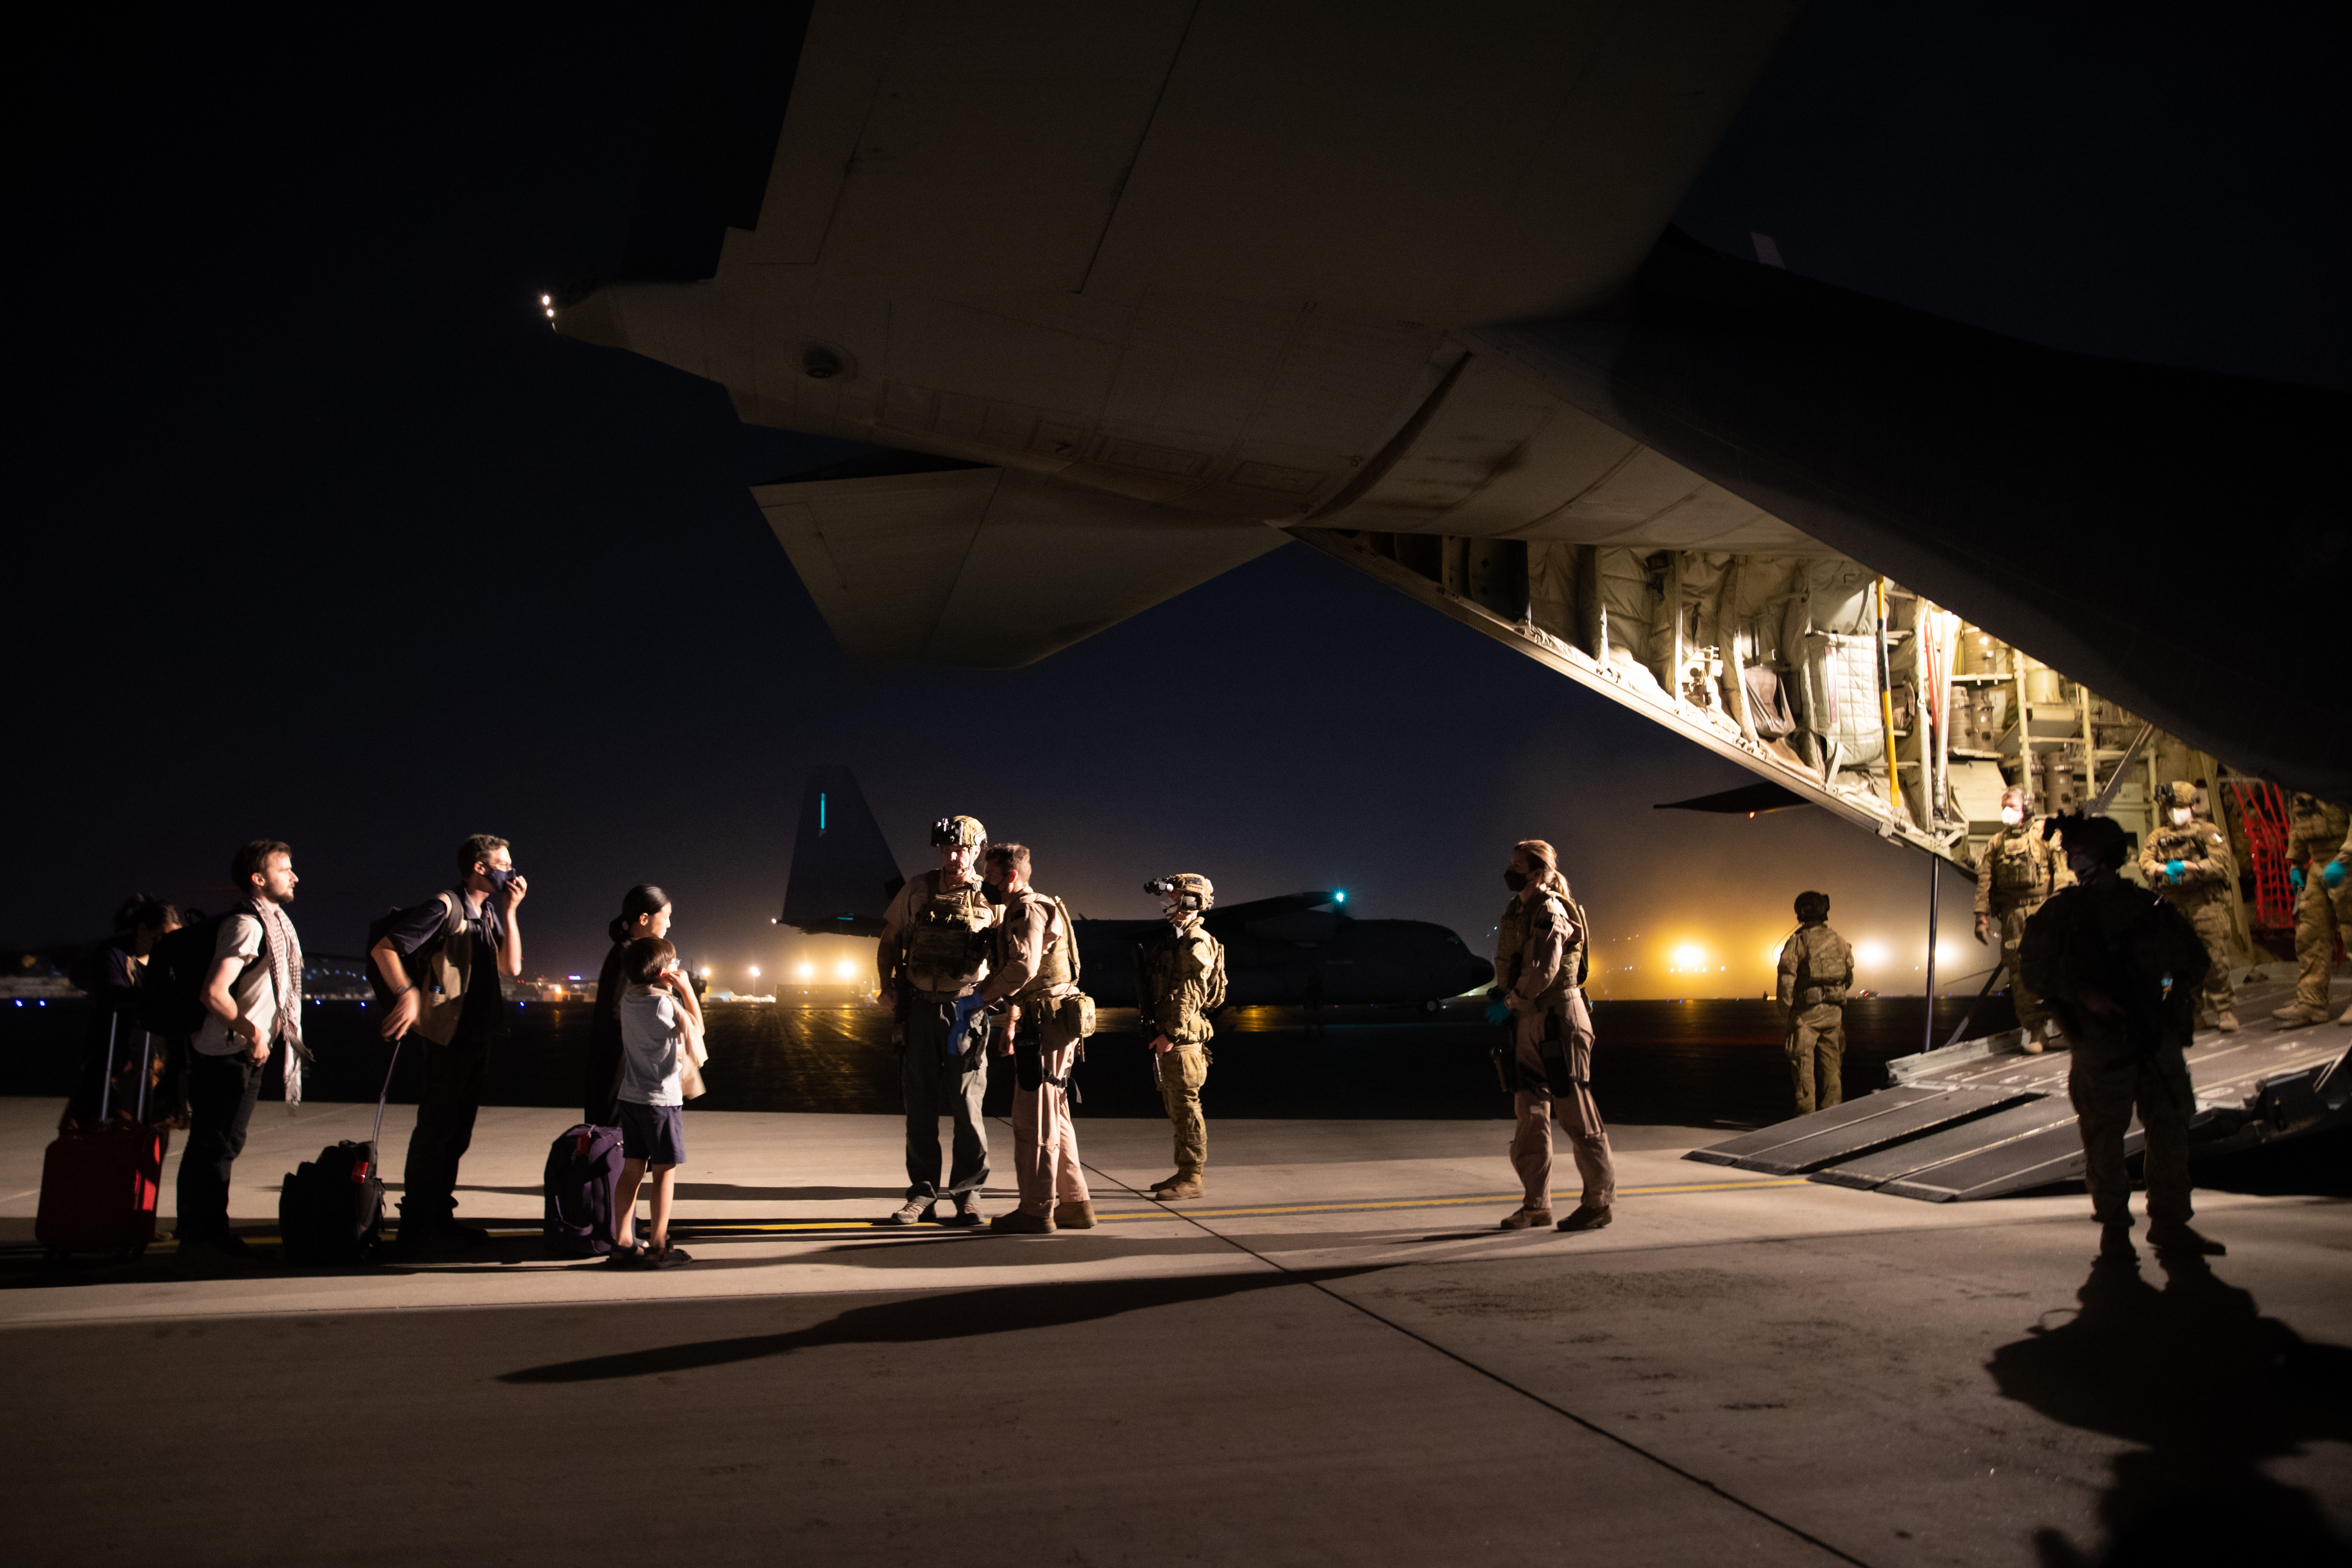 The RAAF C-130J Hercules aircraft landed at Hamid Karzai International Airport in Kabul overnight and departed safely at around 1am local time, 18 August 2021.